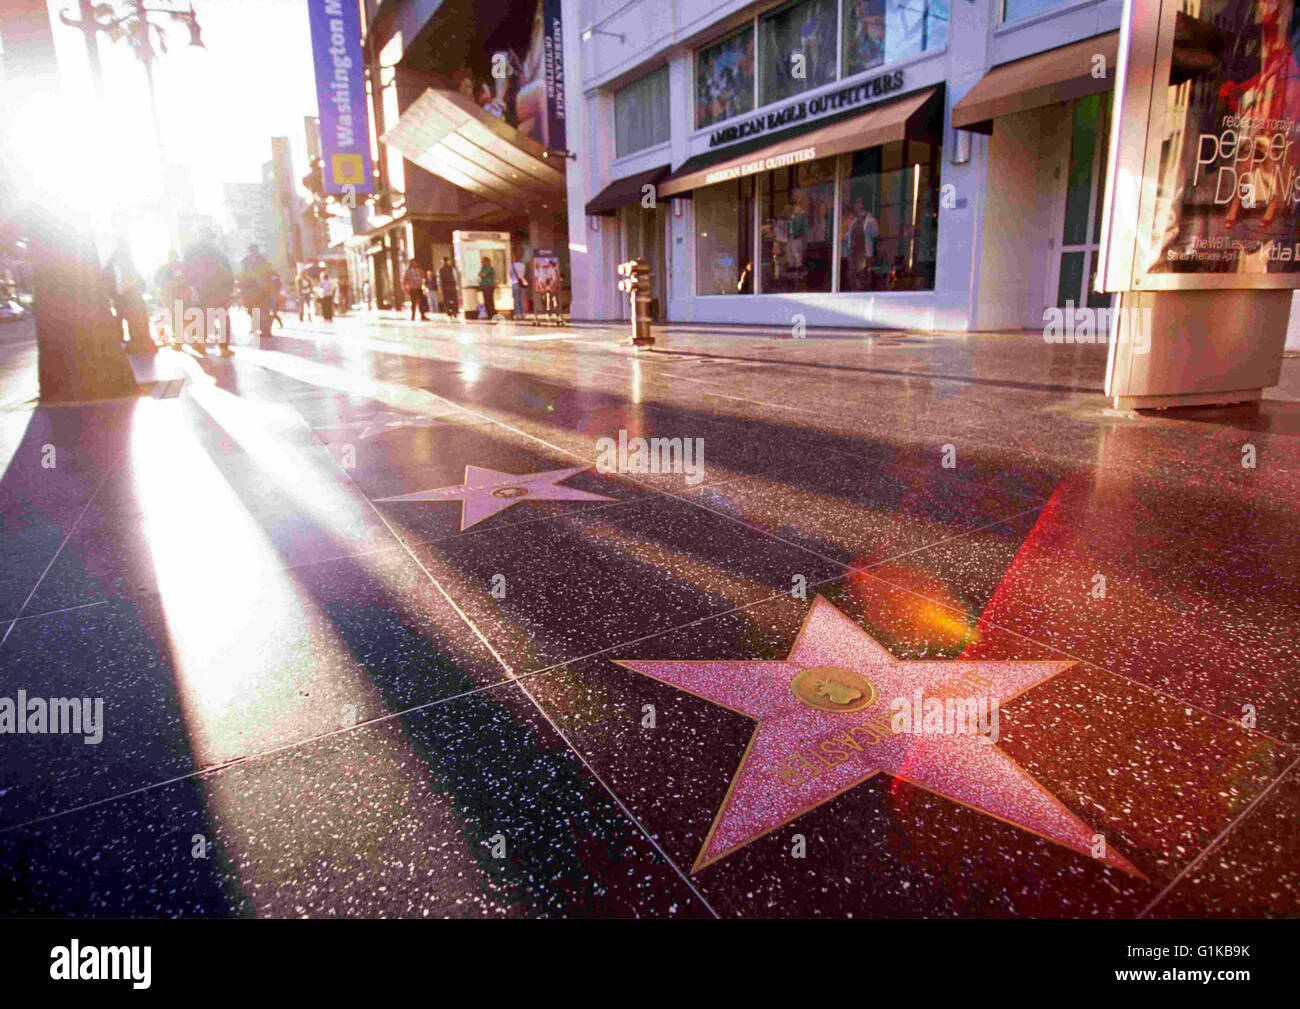 The Hollywood Walk of Fame in Hollywood, Los Angeles, California - Stock Image